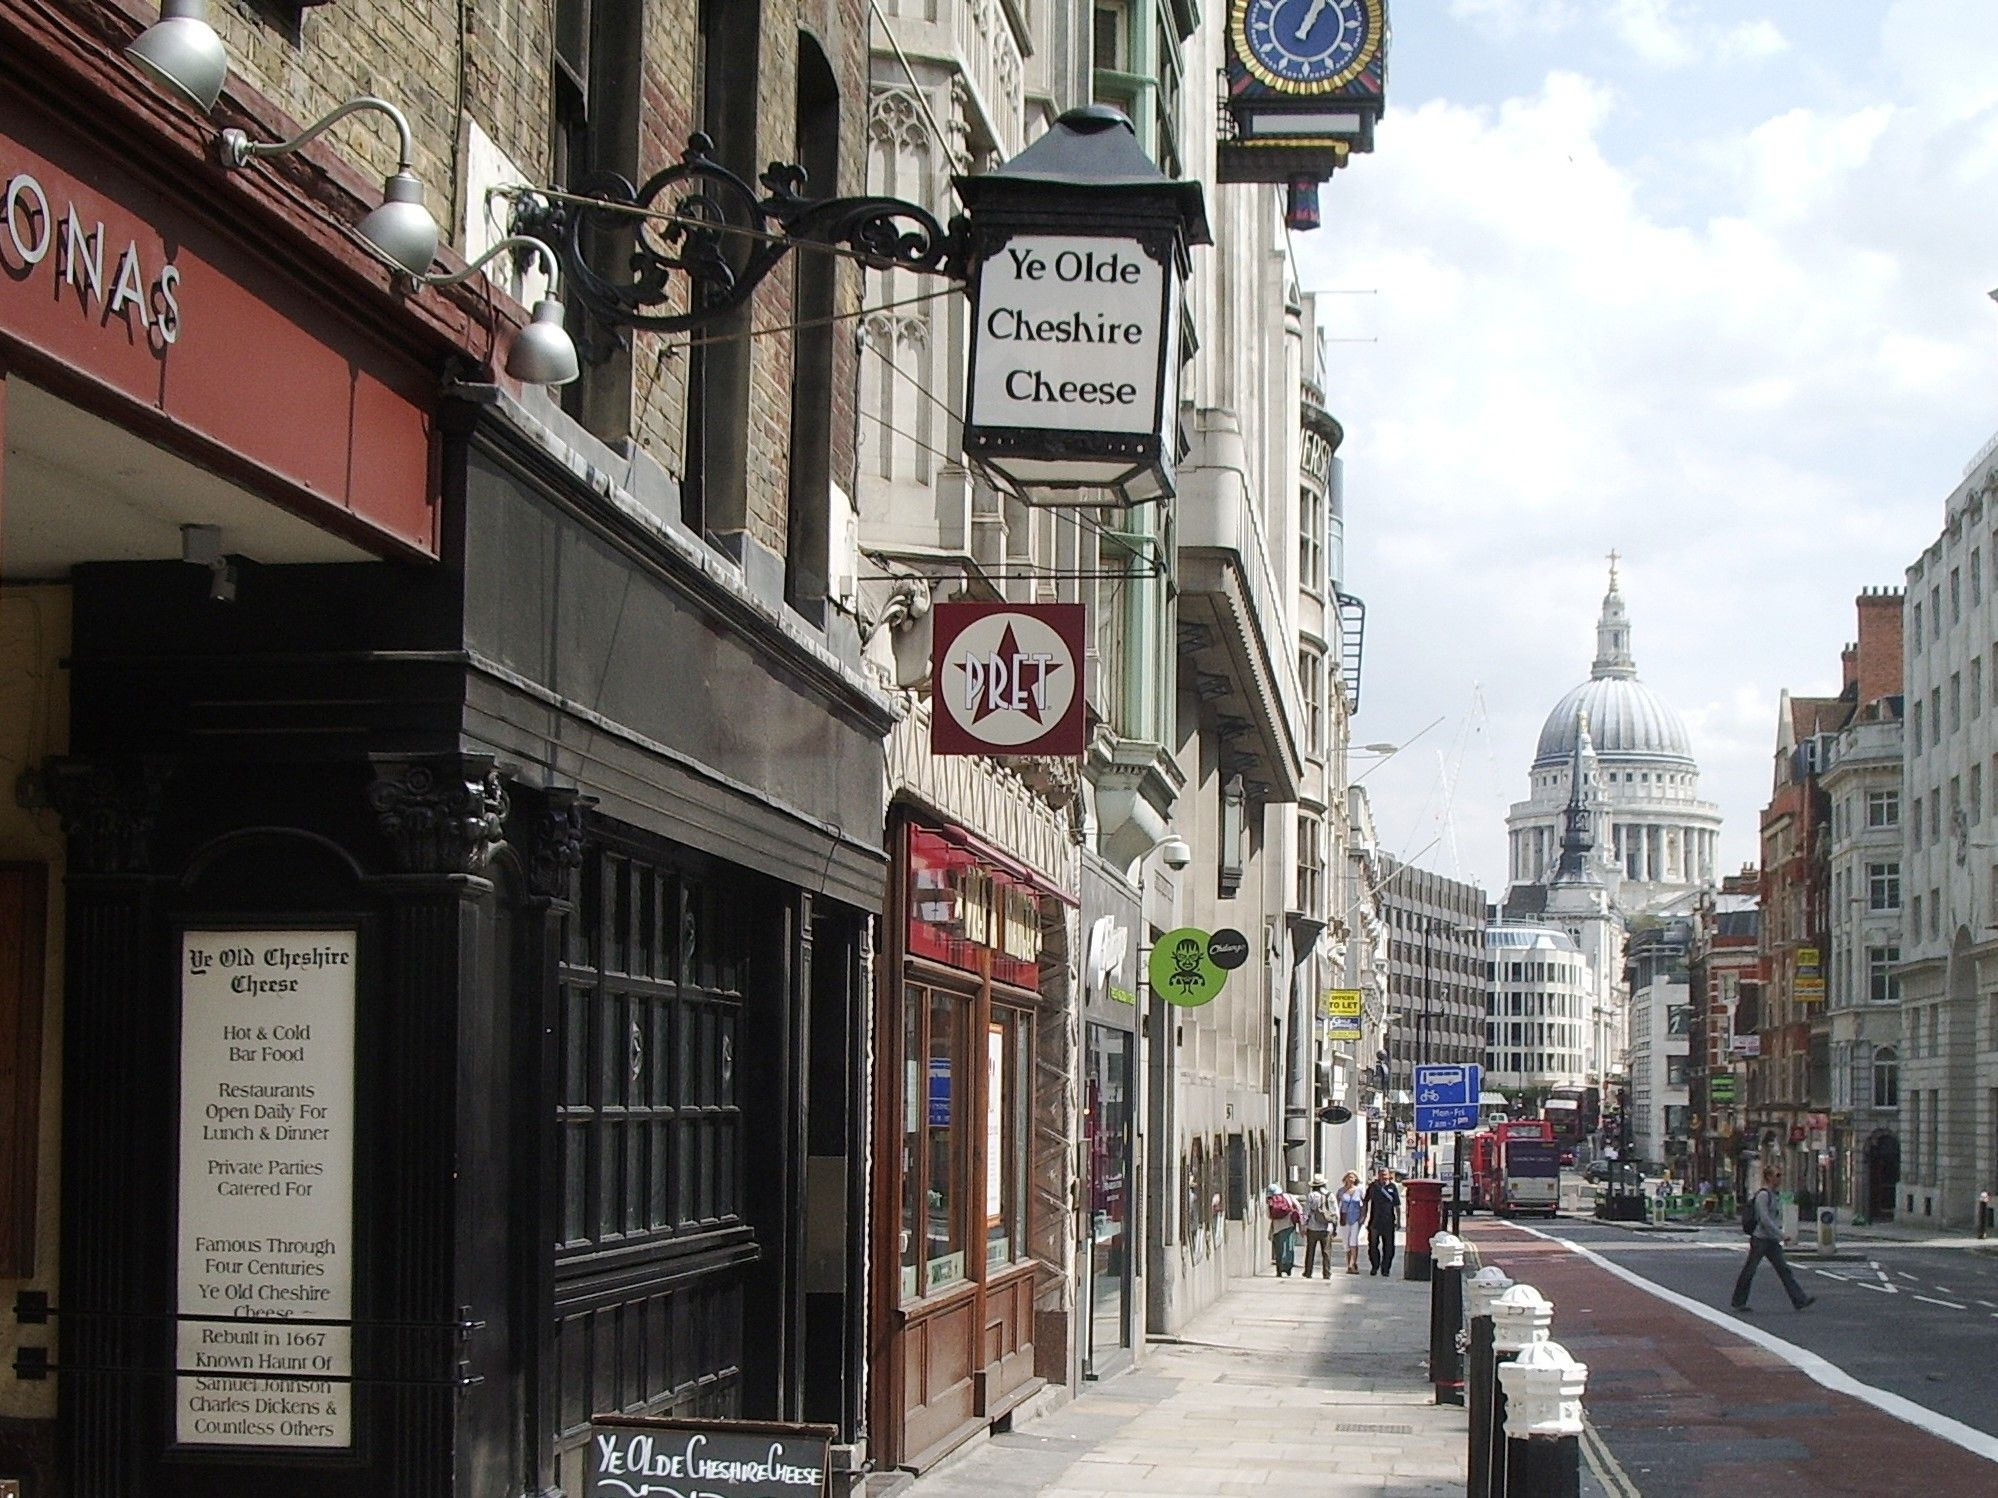 Photo of a street view of Fleet Street. In the foreground is Ye Old Cheshire Cheese, a historic pub with an old fashioned, overhanging lamp. The view looks down the road towards St Paul's Cathedral.